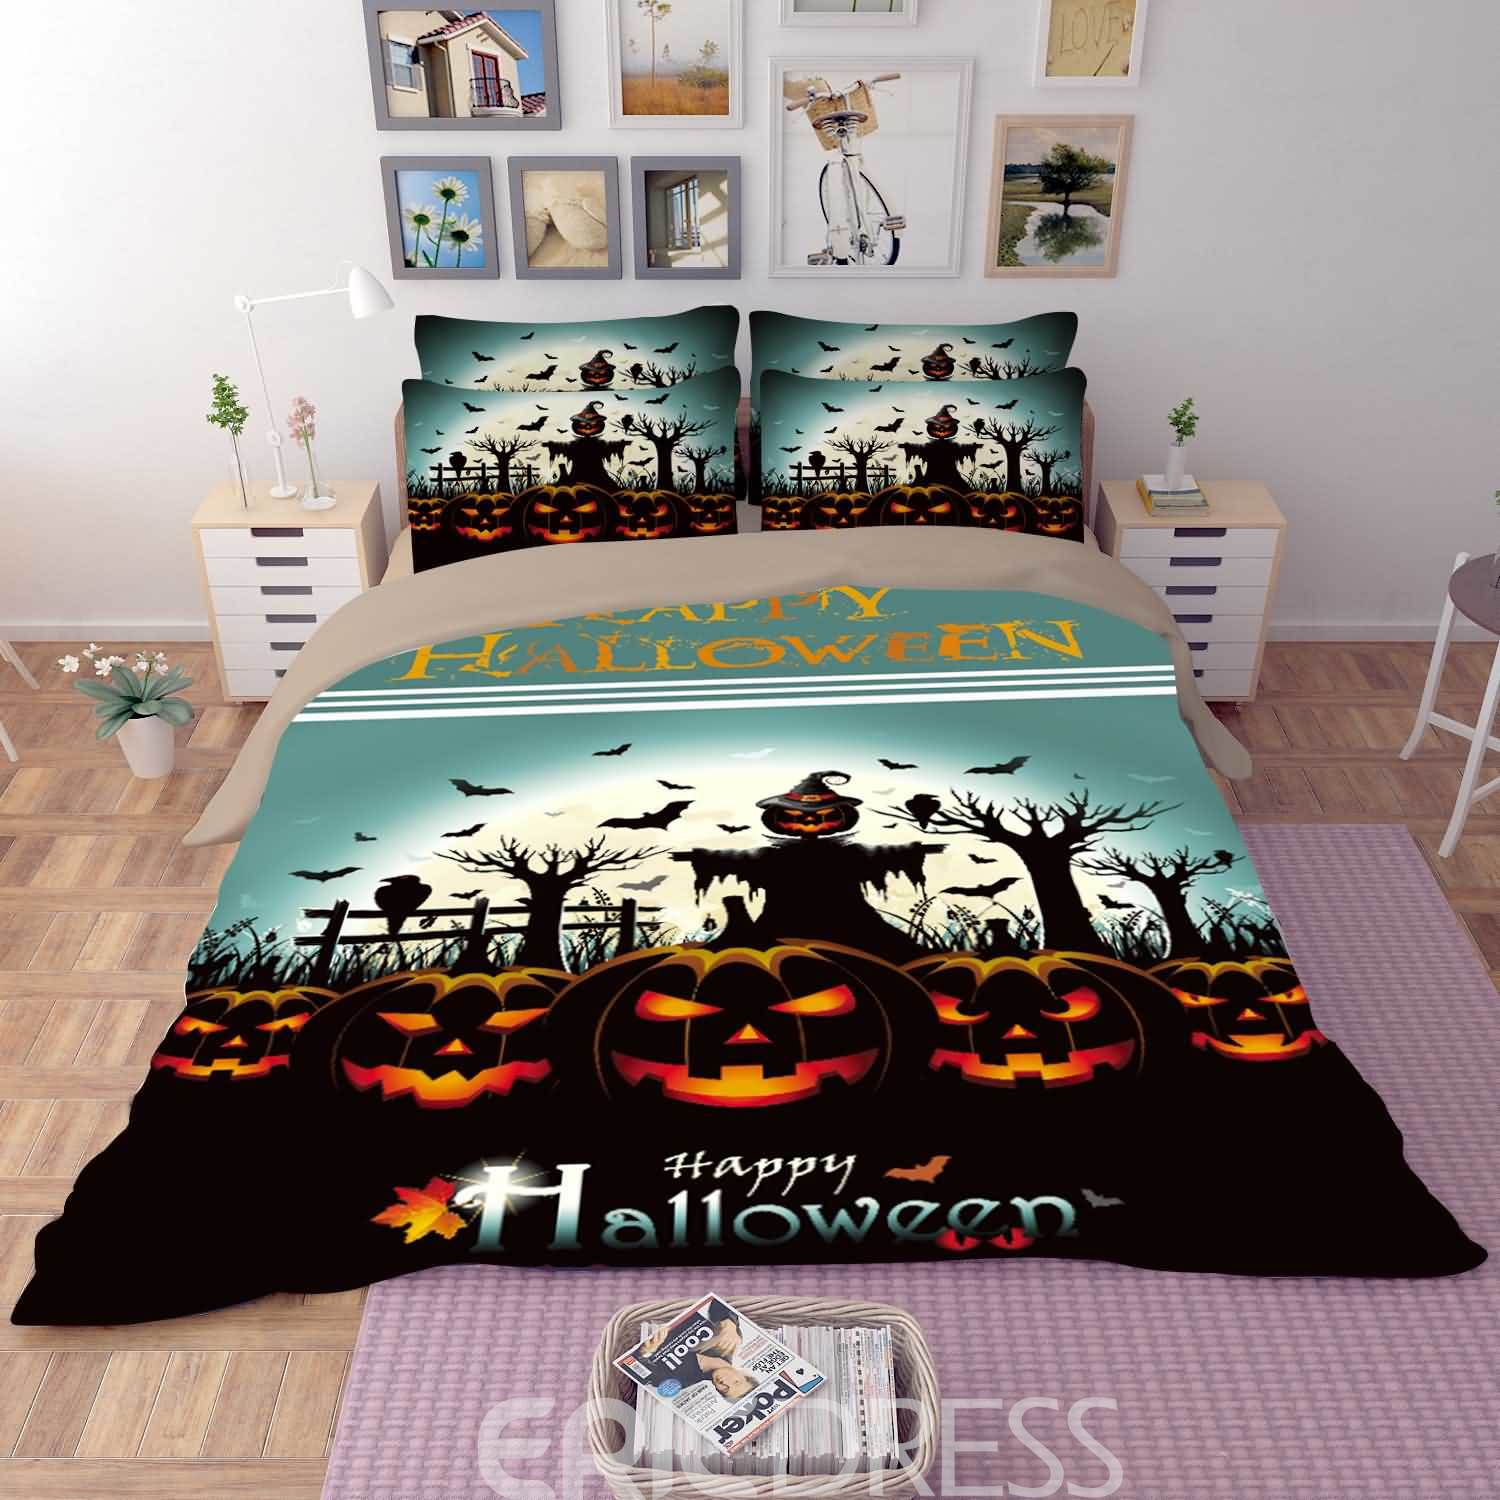 Vivilinen 3D Happy Halloween and Pumpkin Printed Polyester 4-Piece Bedding Sets/Duvet Covers